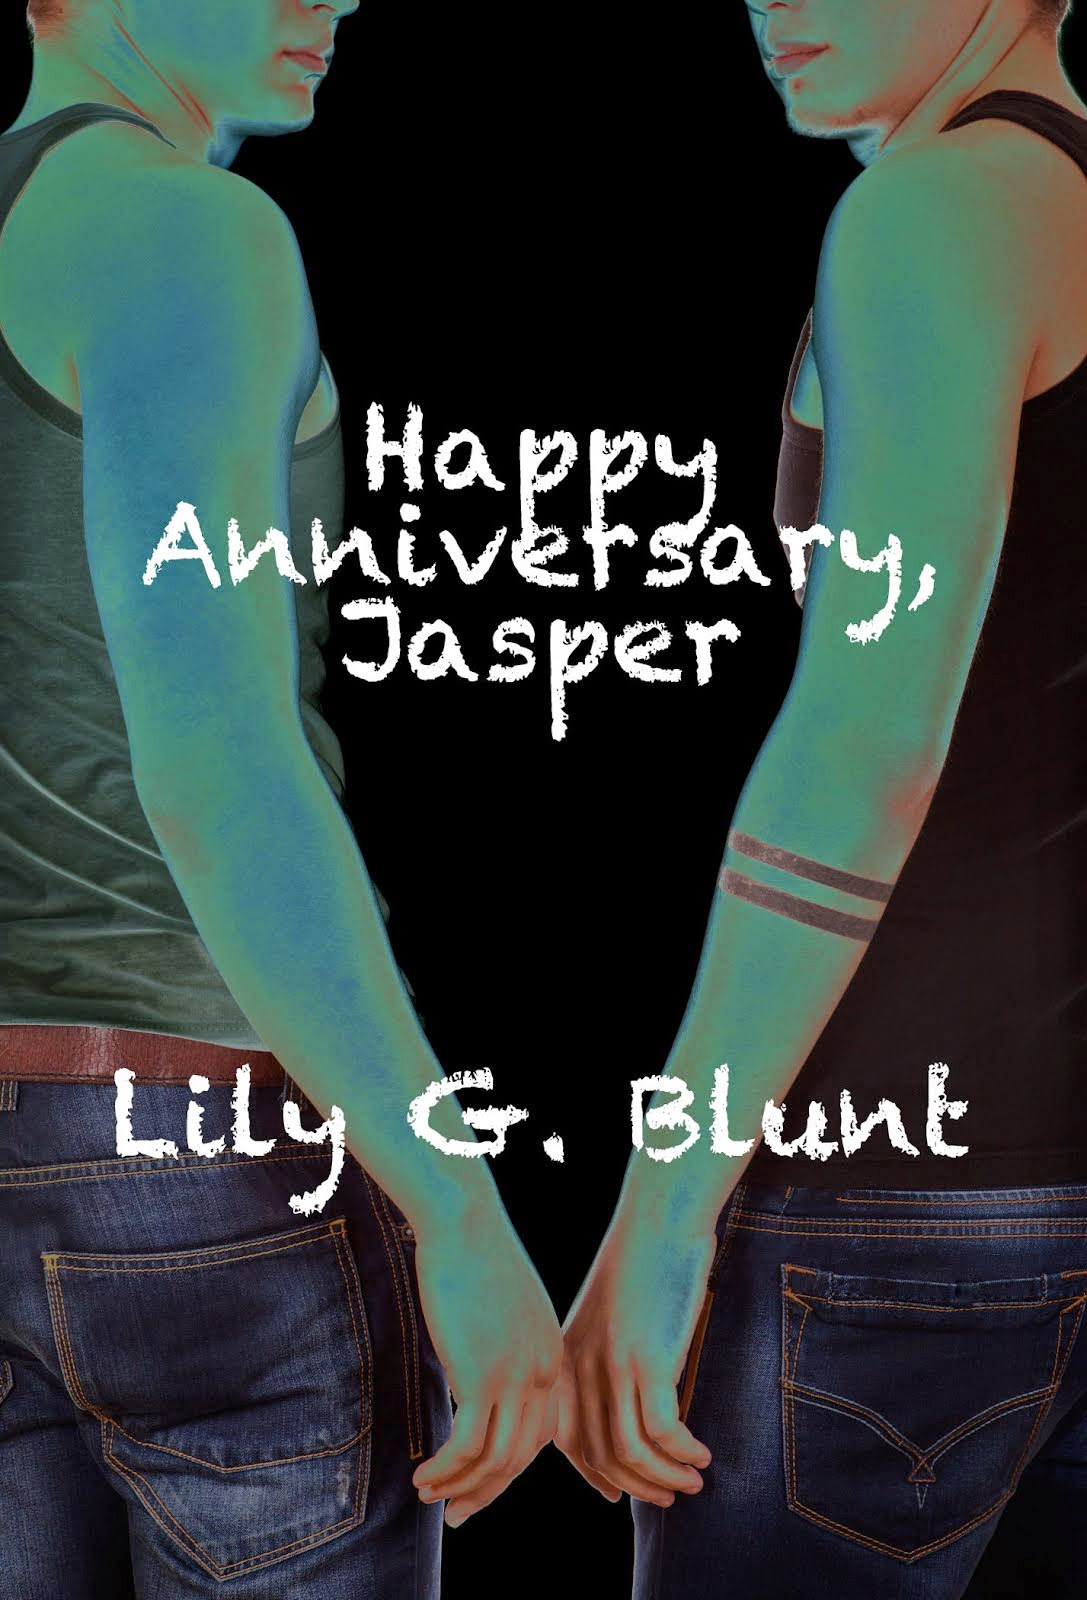 Happy Anniversary, Jasper